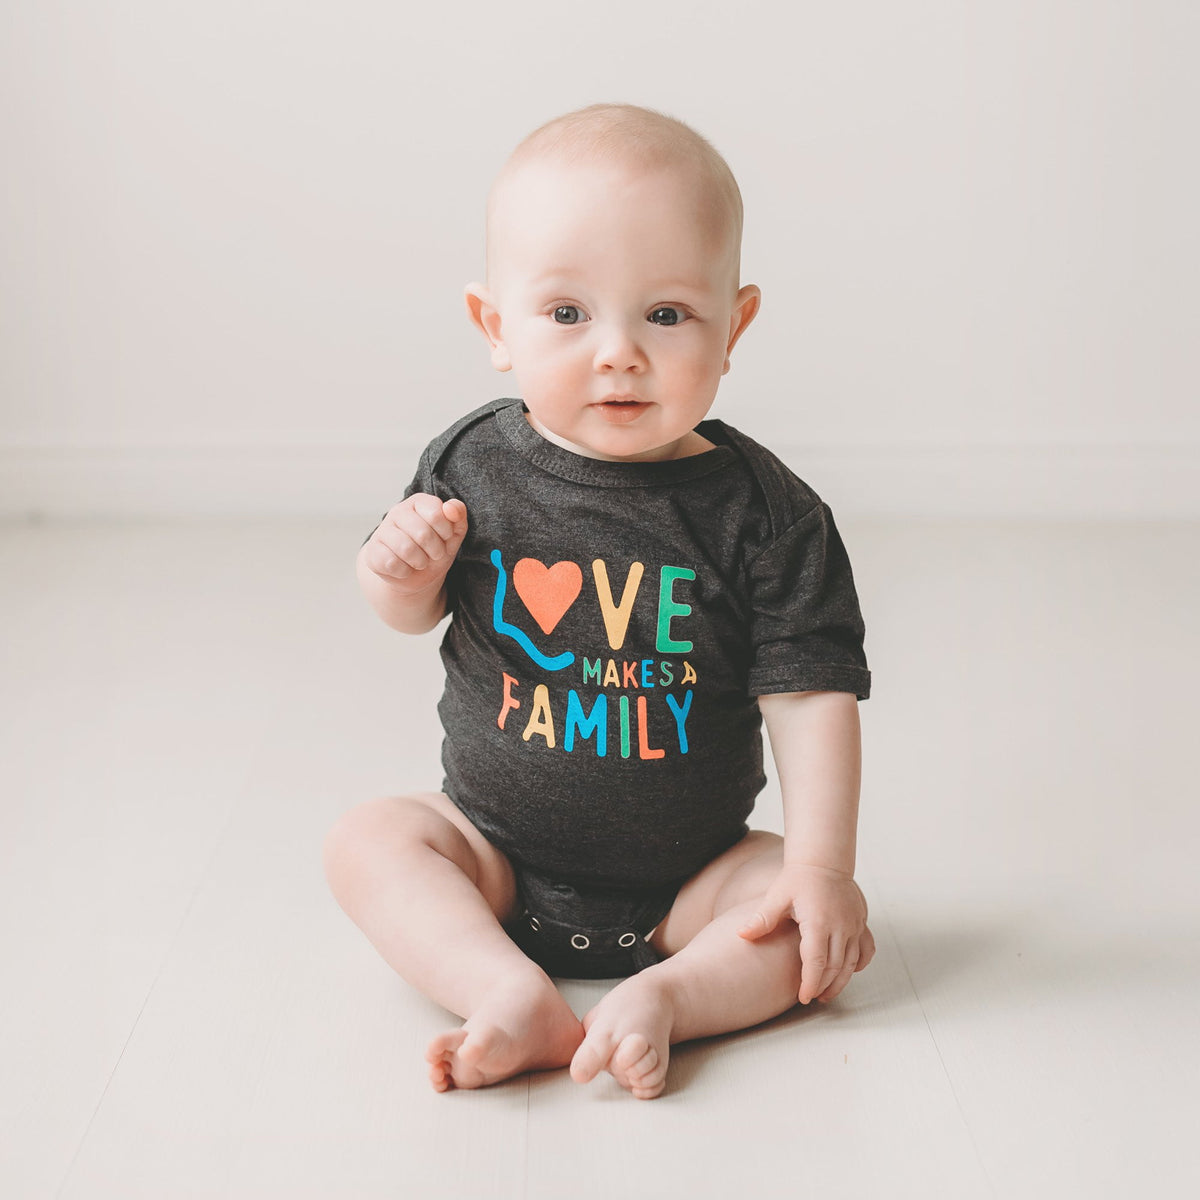 Love Makes a Family baby bodysuit / onesie - Sweetpea and Co.